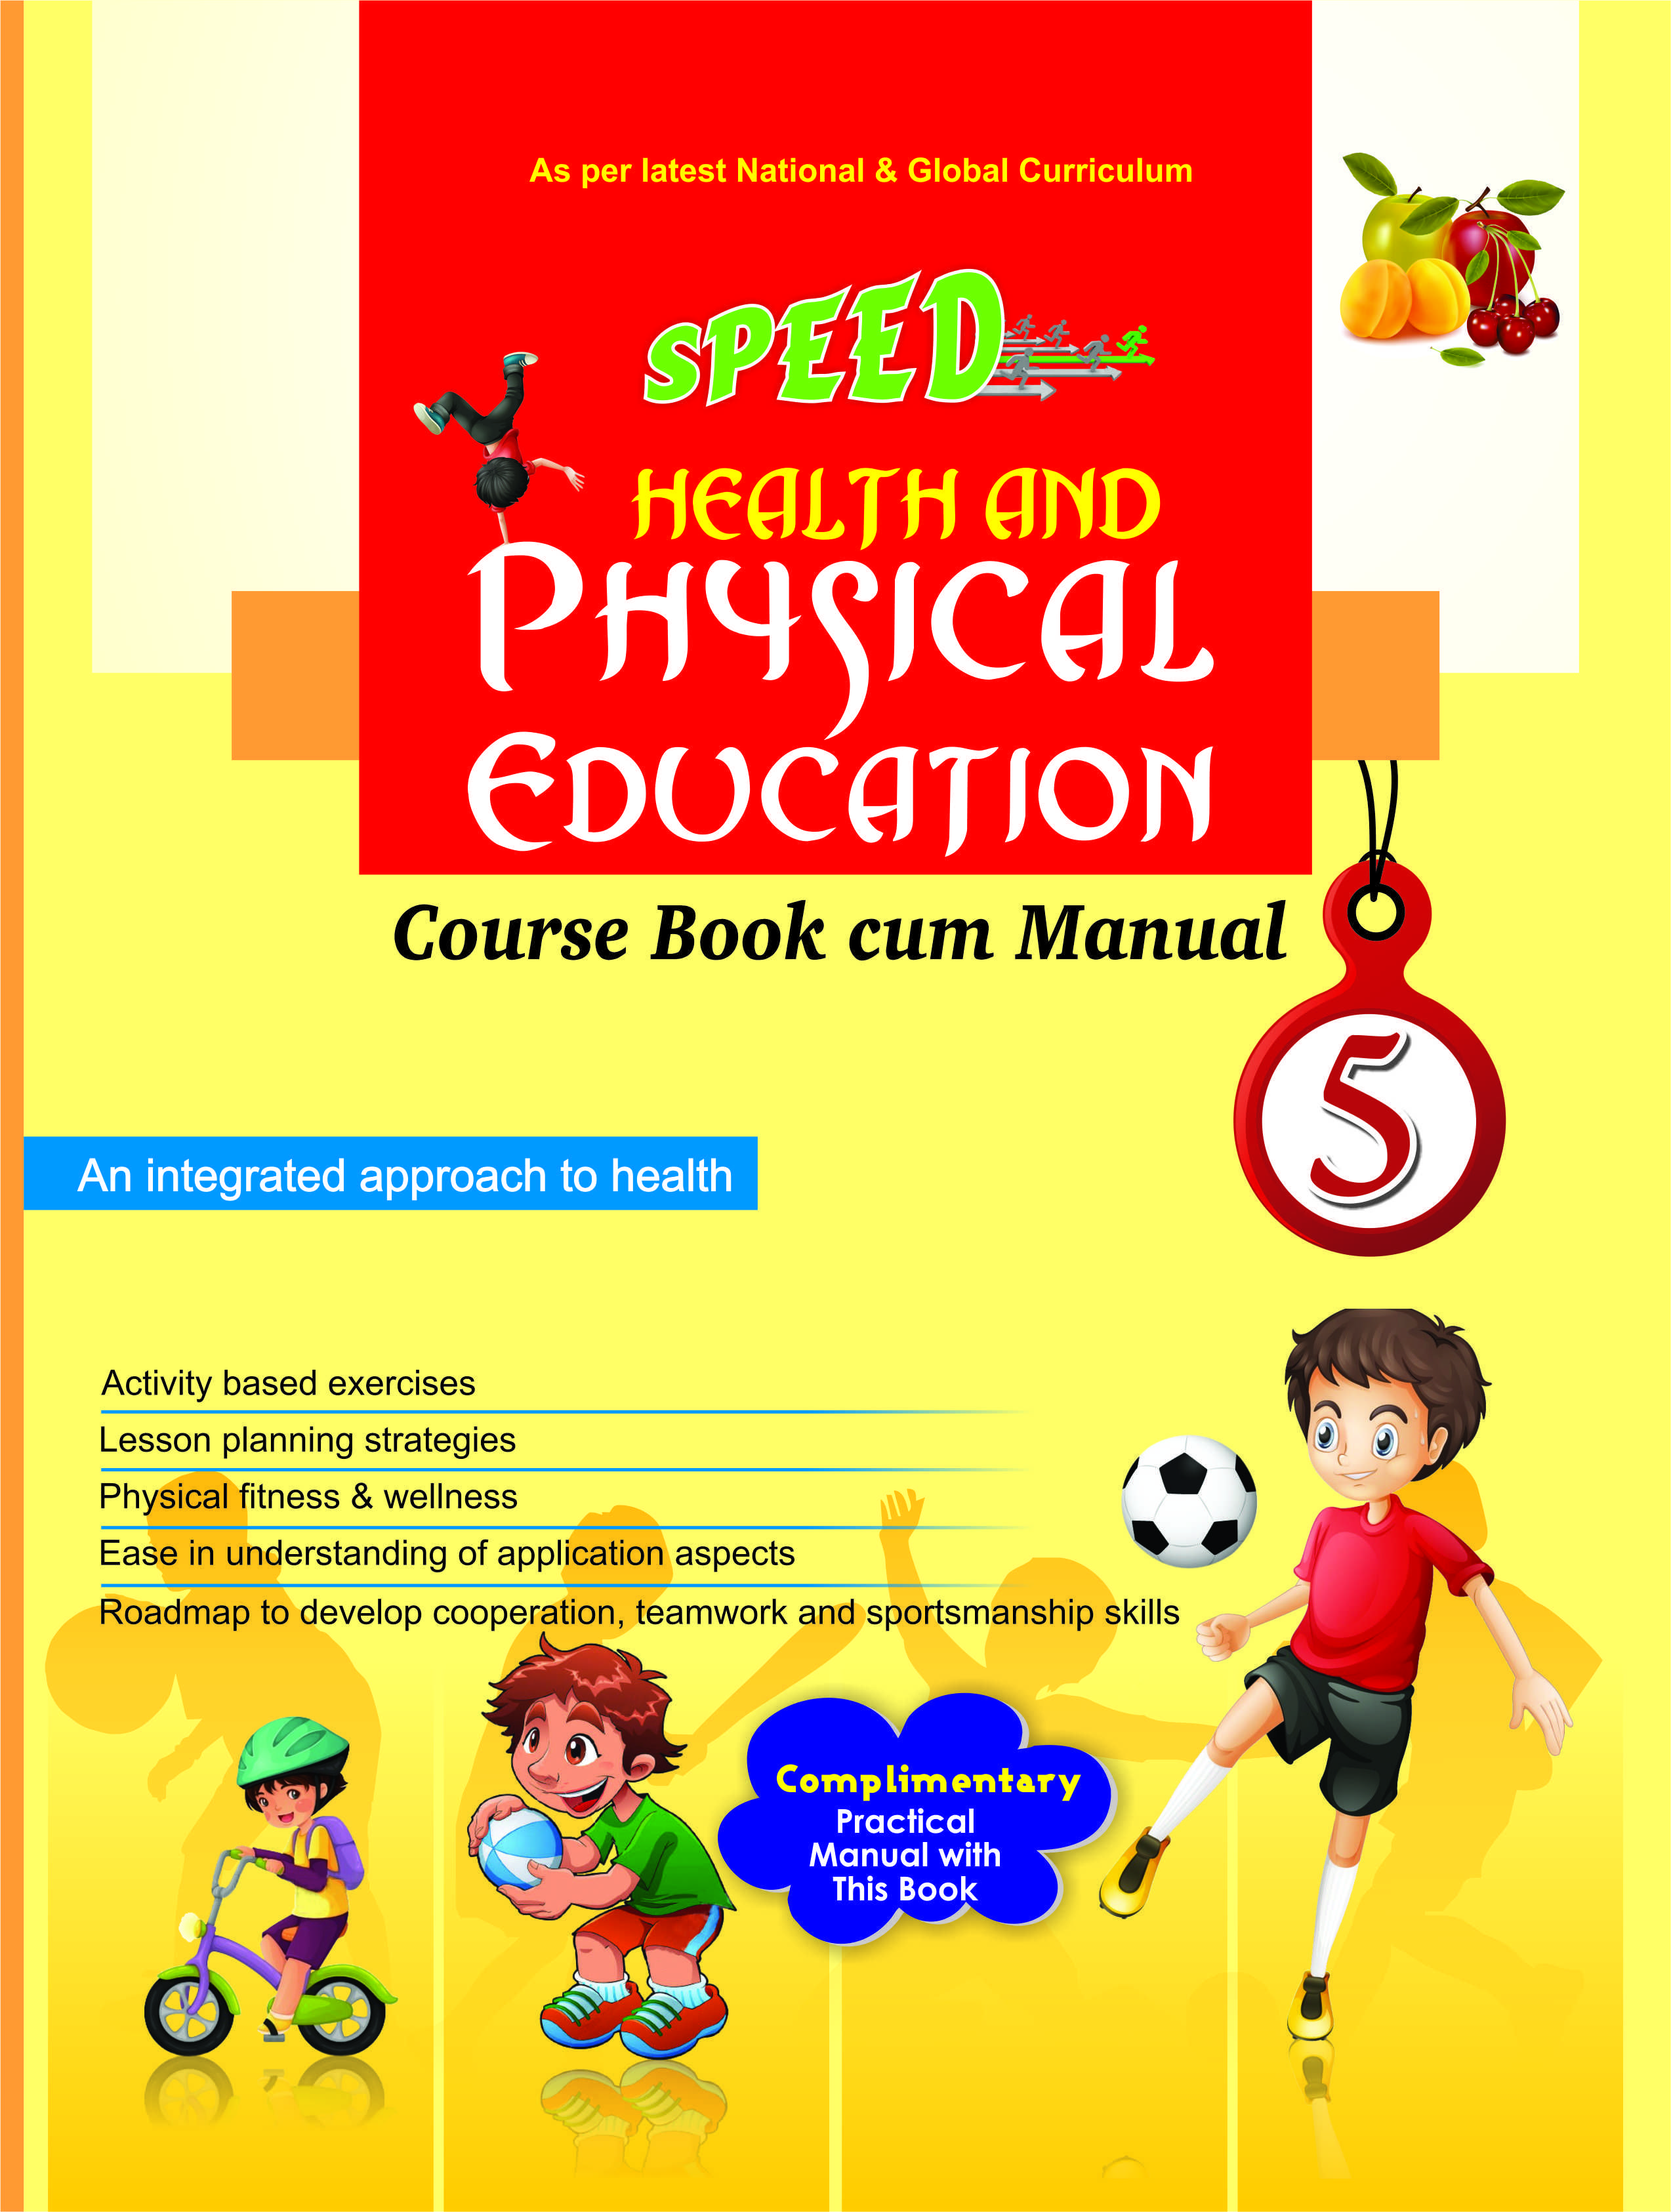 Speed Health Amp Physical Education For Class 5 With Images